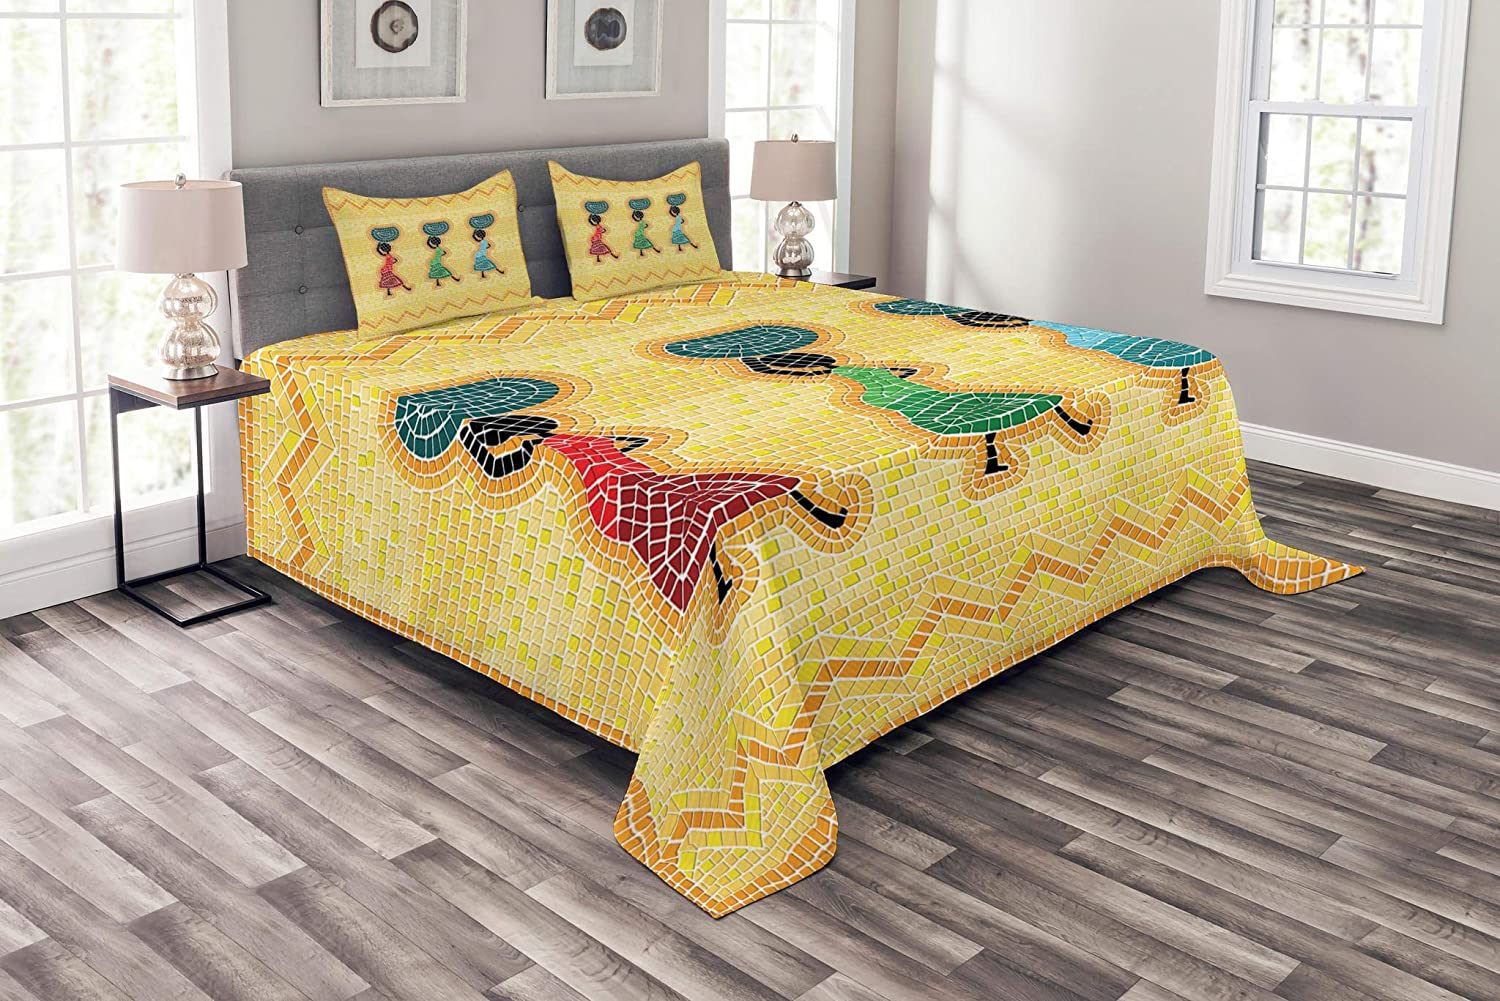 Lunarable African Bedspread, Mosaic Pattern of an Scene Women Carrying Food Basket Traditional, Decorative Quilted 3 Piece Coverlet Set with 2 Pillow Shams, Queen Size, Yellow